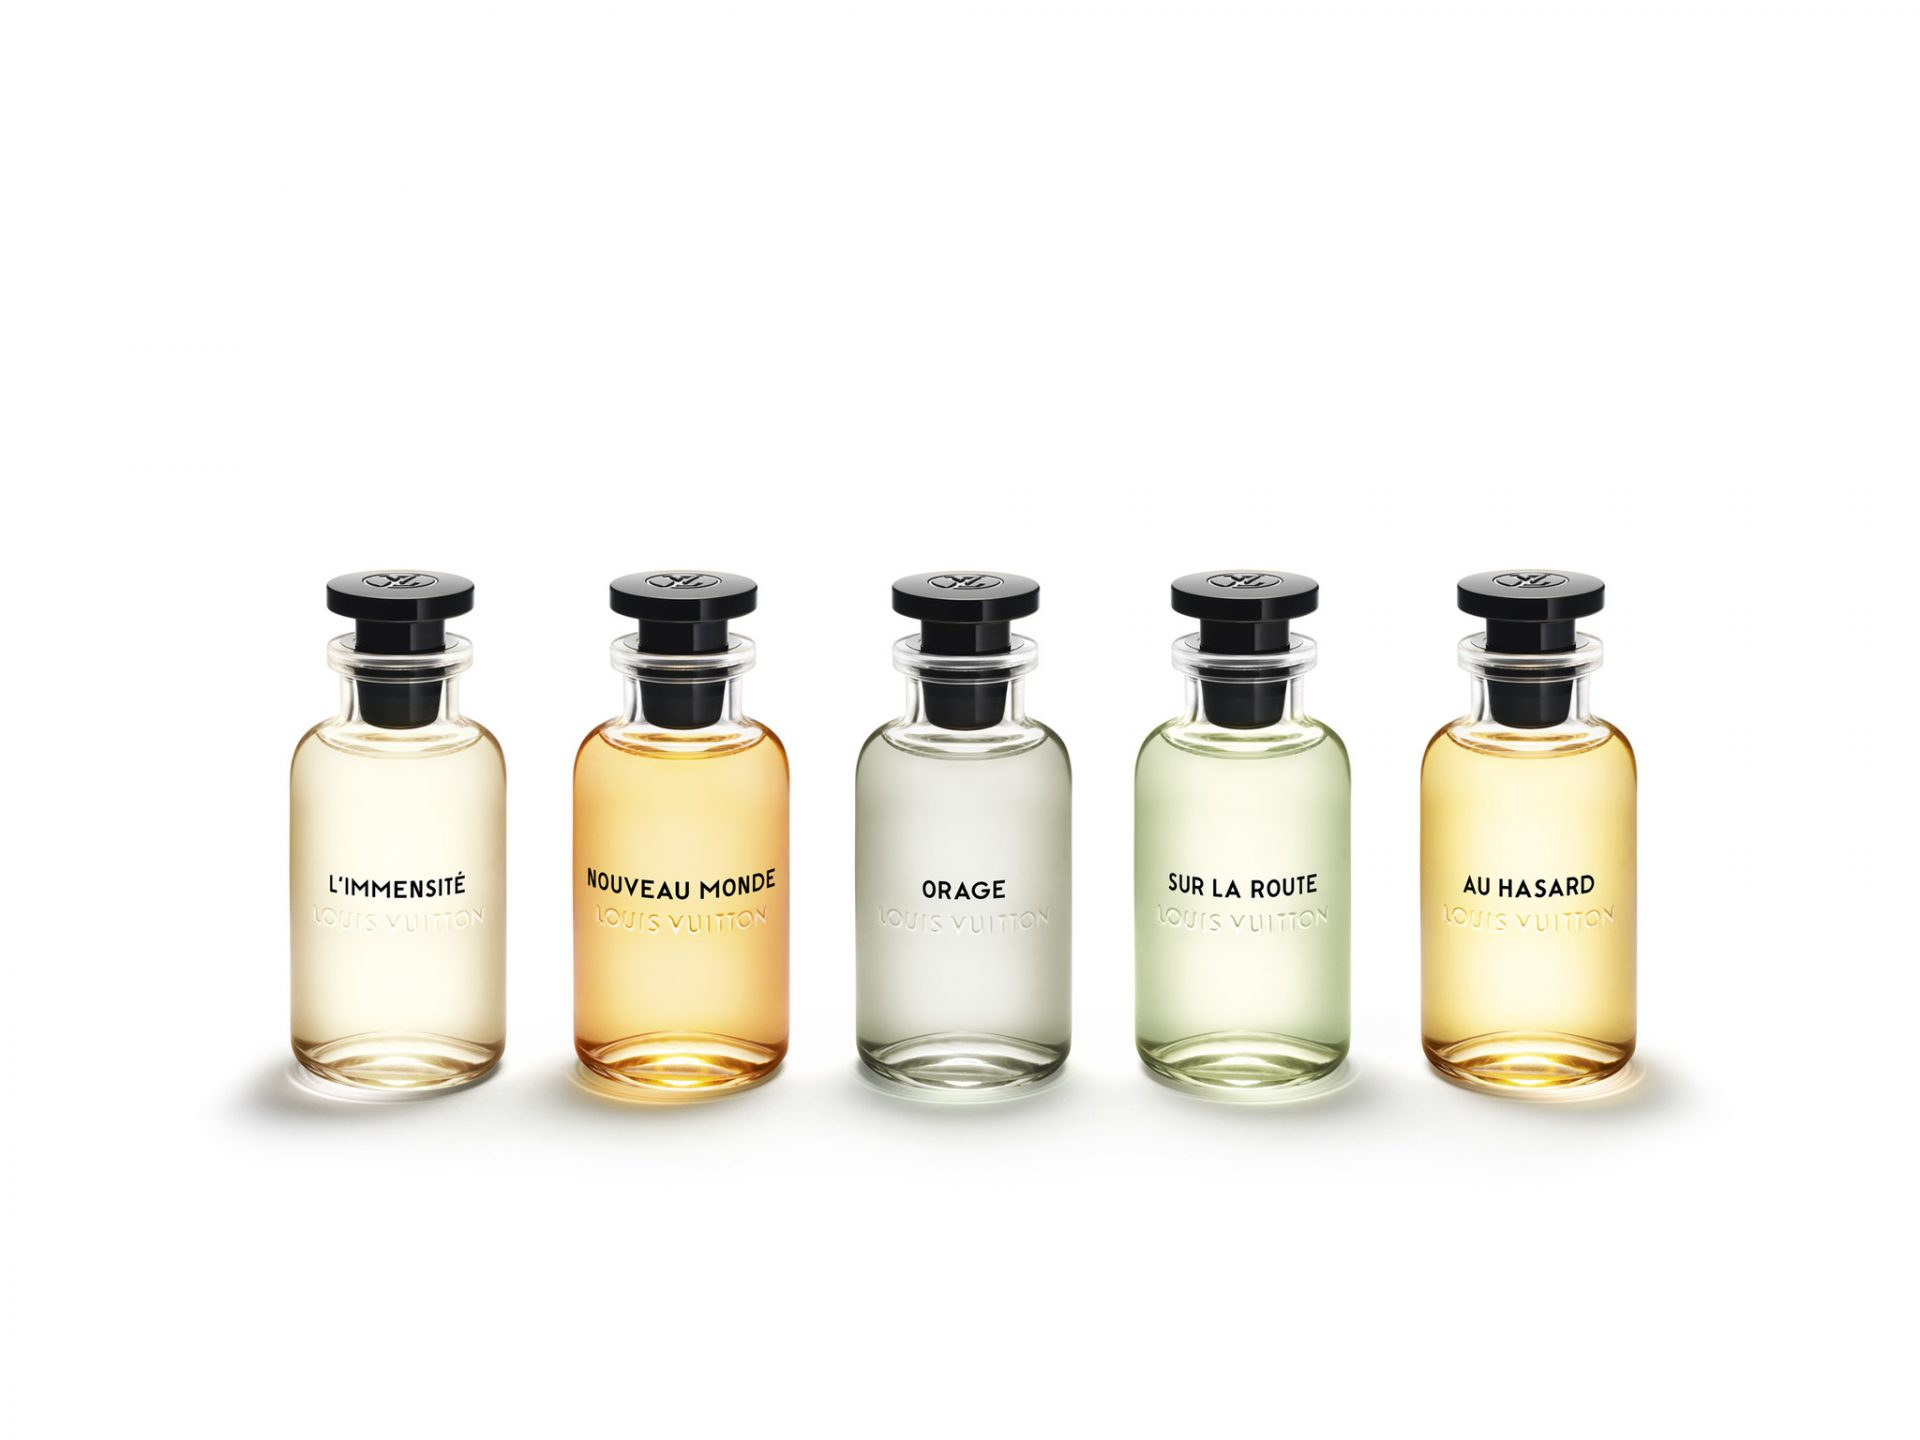 8bb08762535 Louis Vuitton embraces adventure with first-ever men s fragrance ...